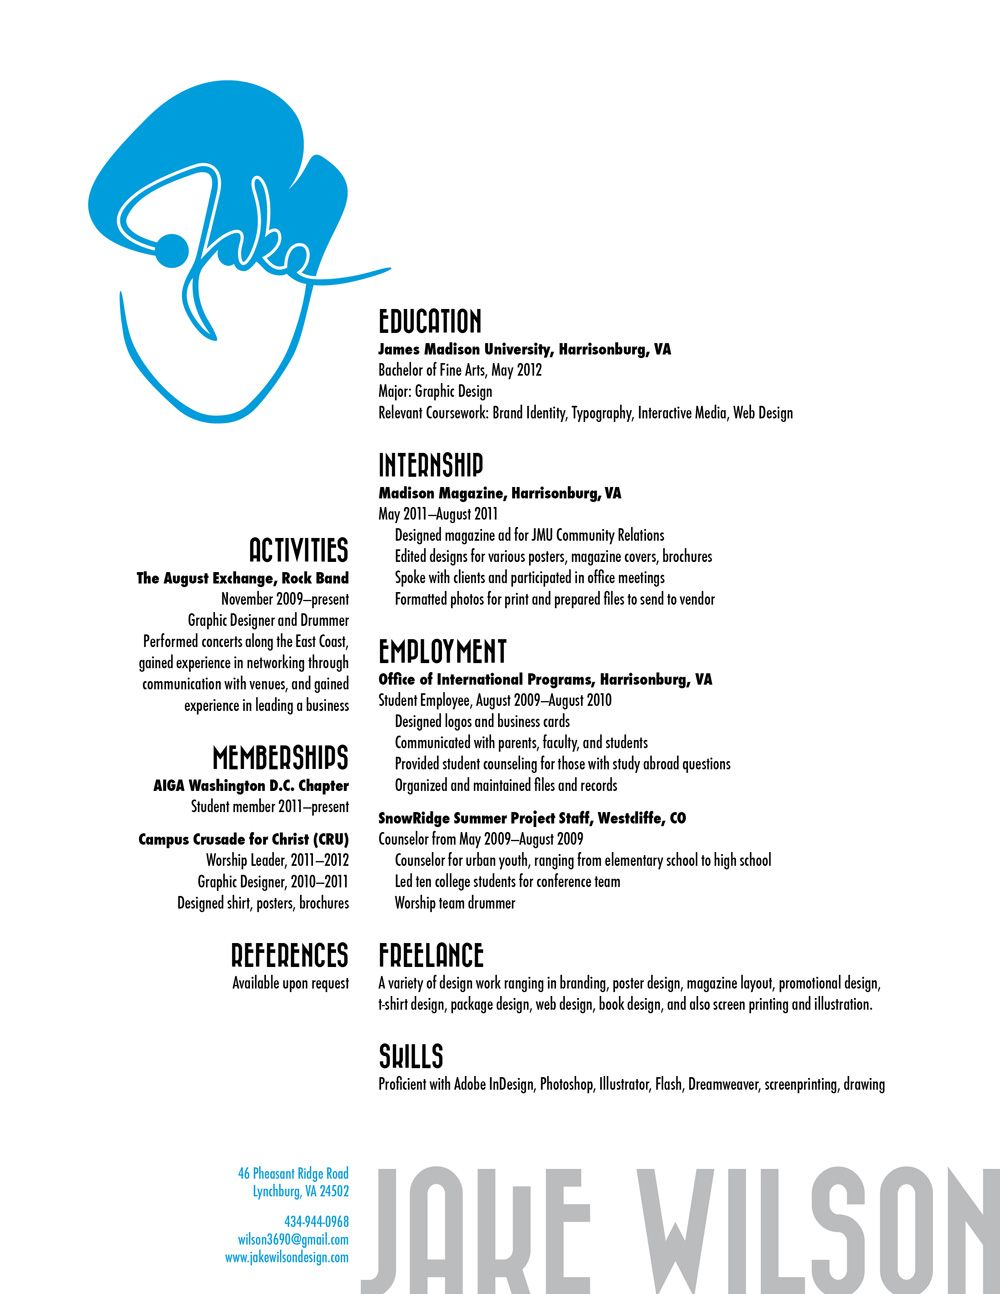 Cyan resume | Design | Pinterest | Graphic design inspiration and ...